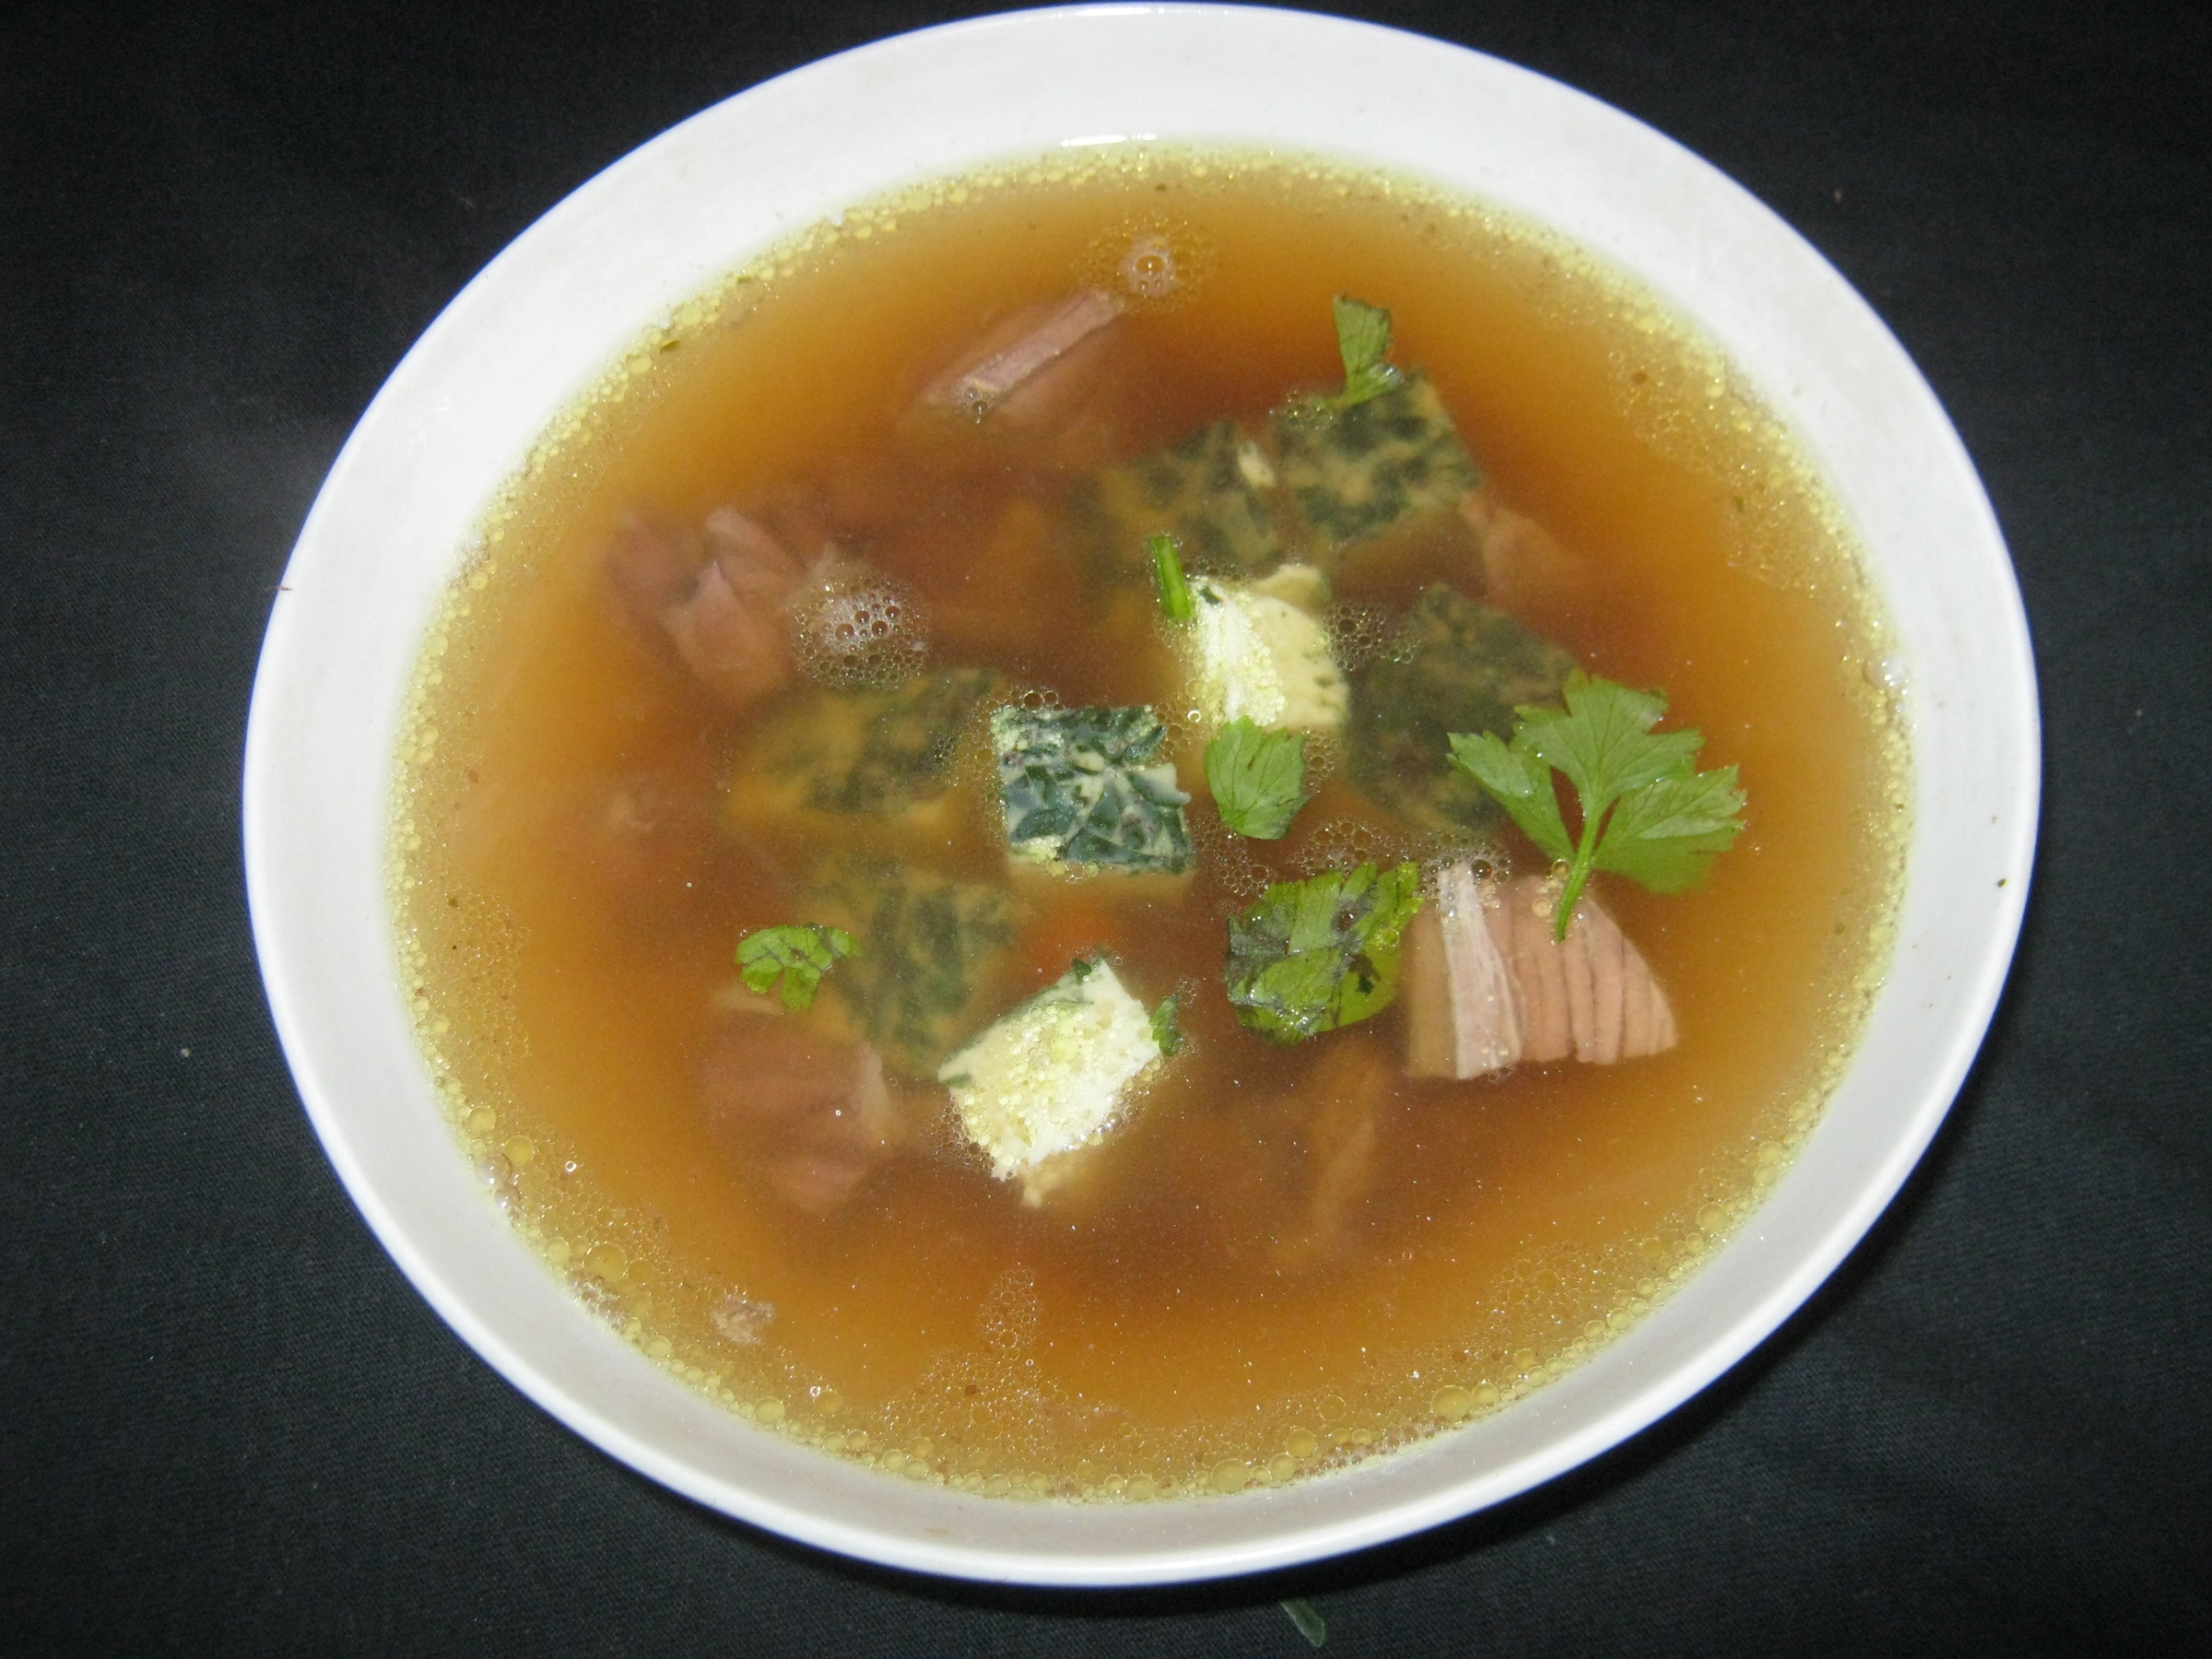 Find this clear meat broth with green Eierstich and other German recipes